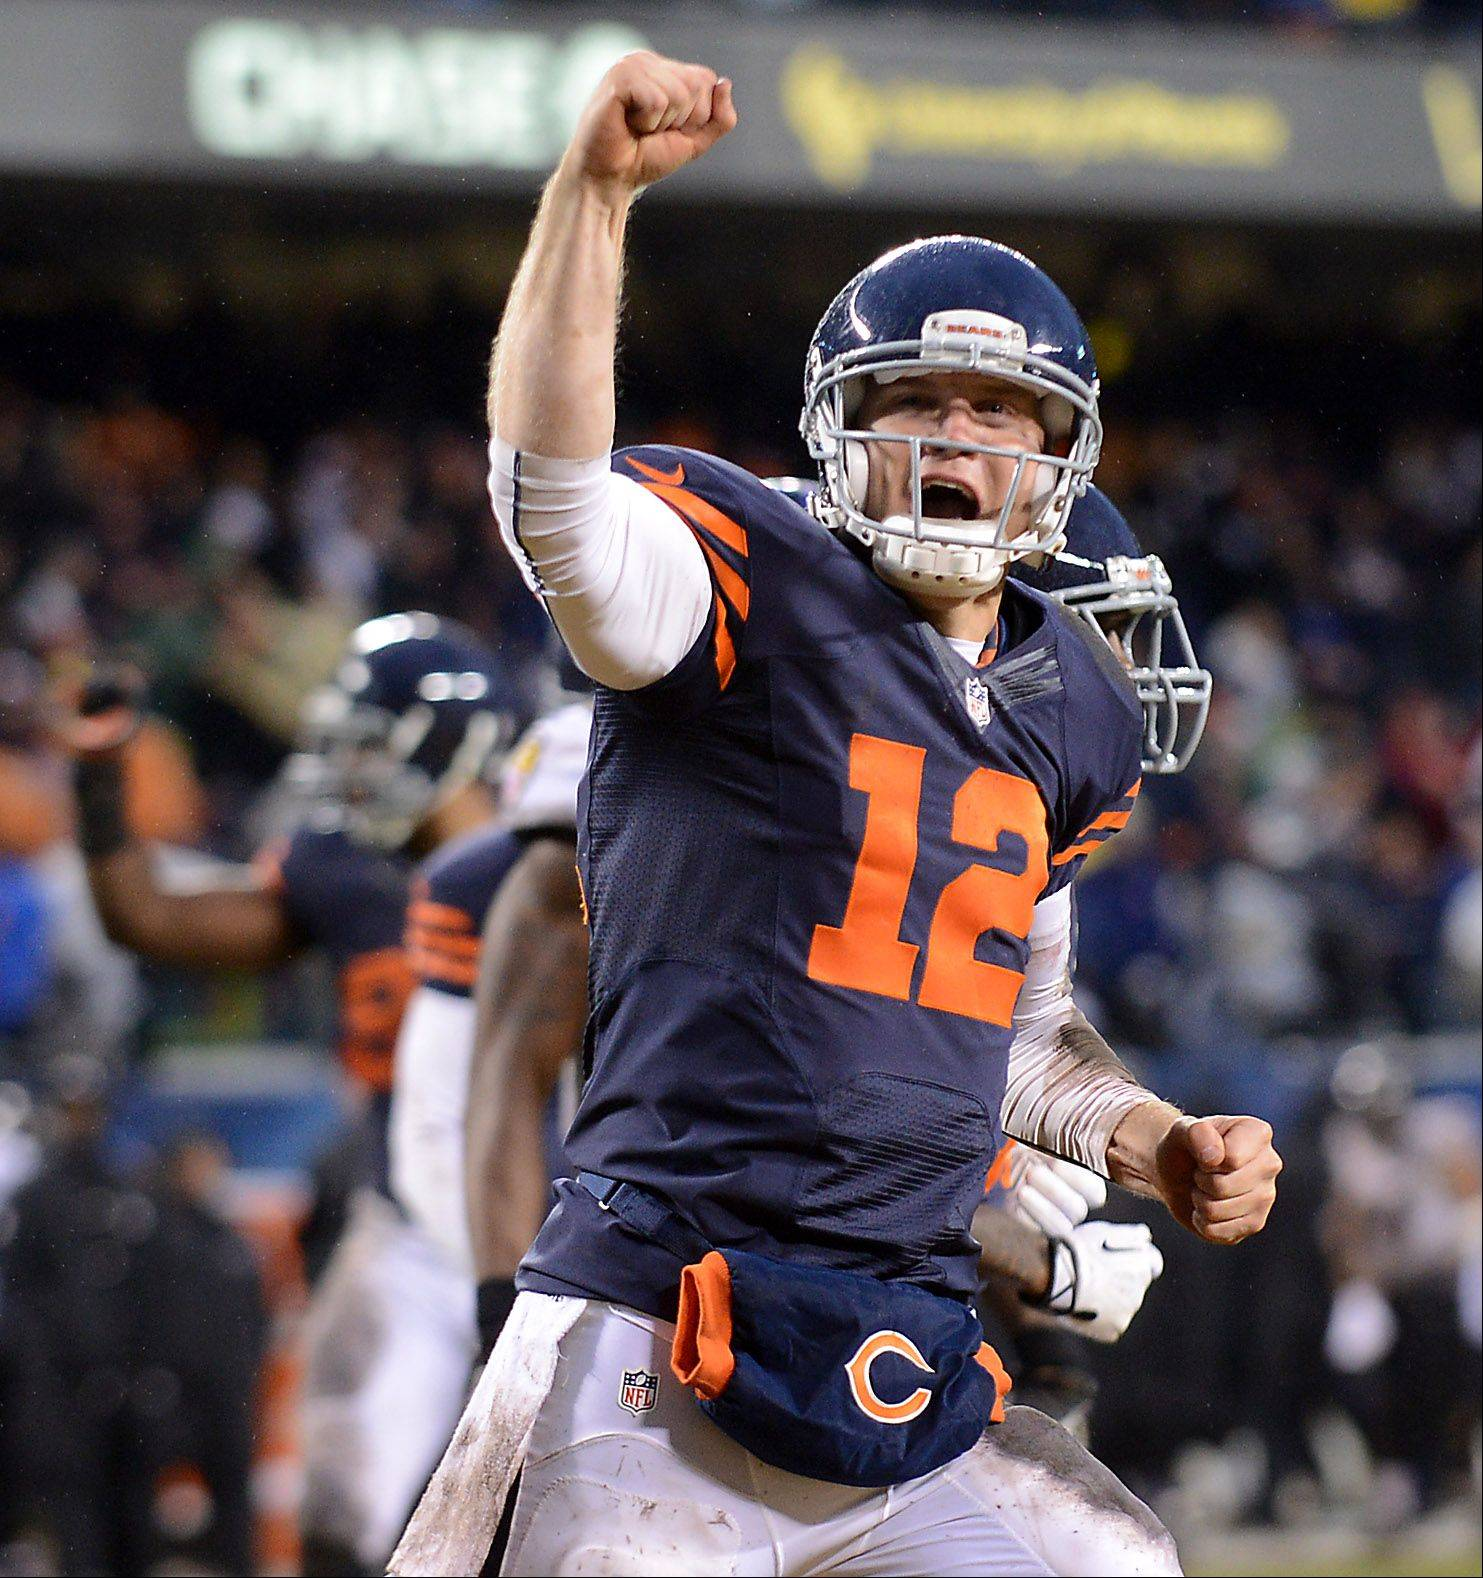 Chicago Bears quarterback Josh McCown (12) pumps his fist after Matt Forte's touchdown put the Bears ahead in the fourth quarter during Sunday's game in Chicago.